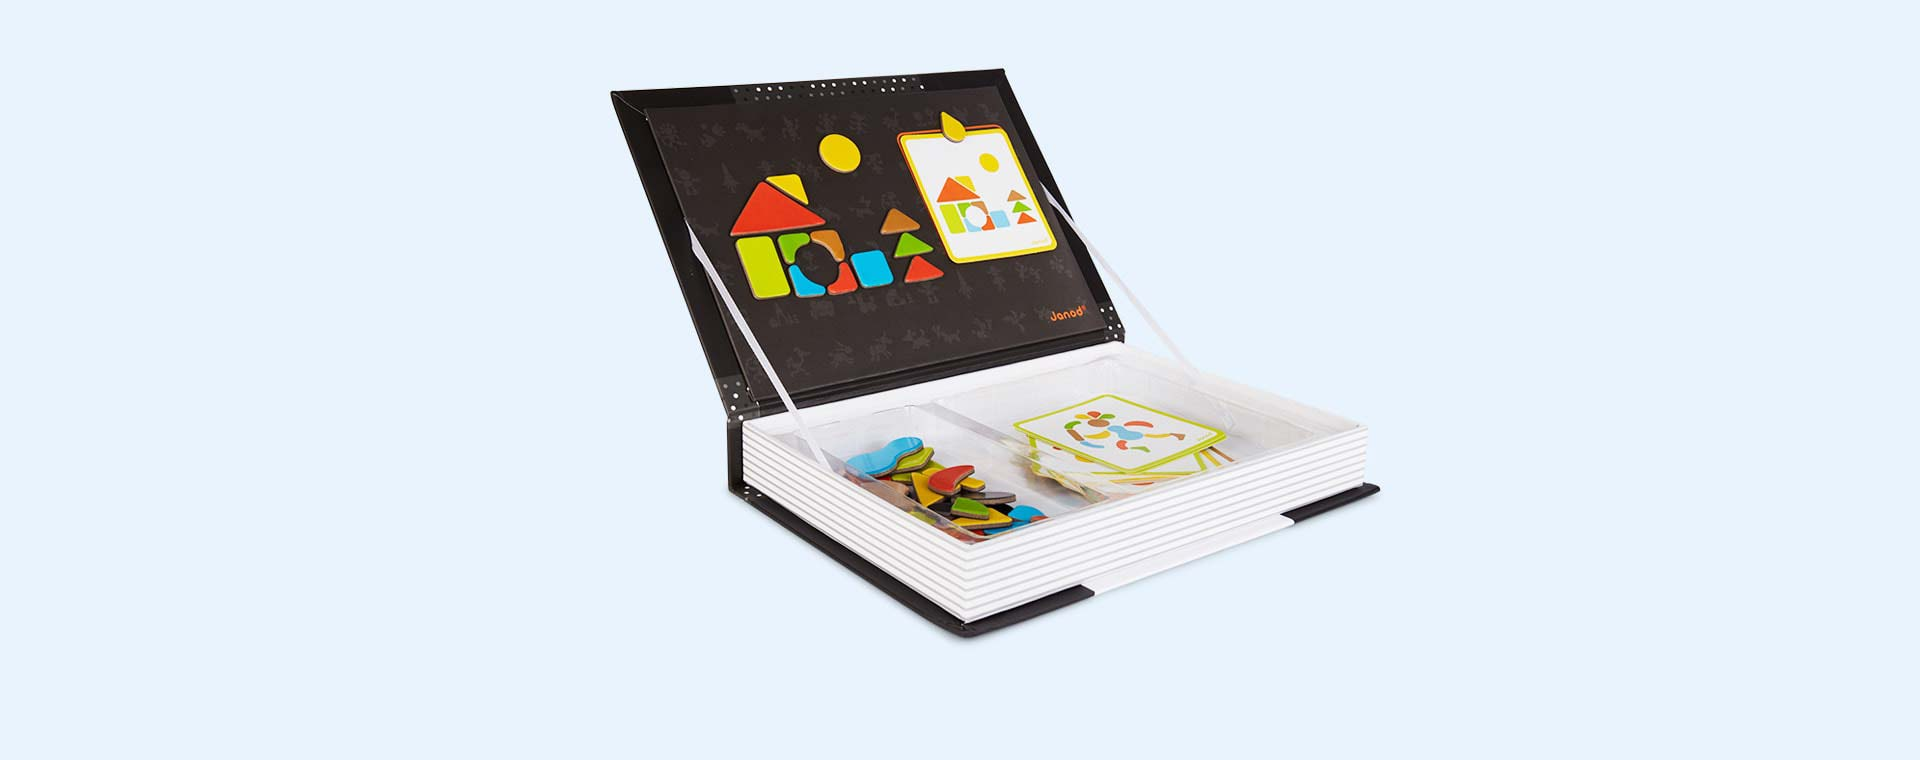 Buy the Janod Magnetibook Educational Toy at KIDLY.